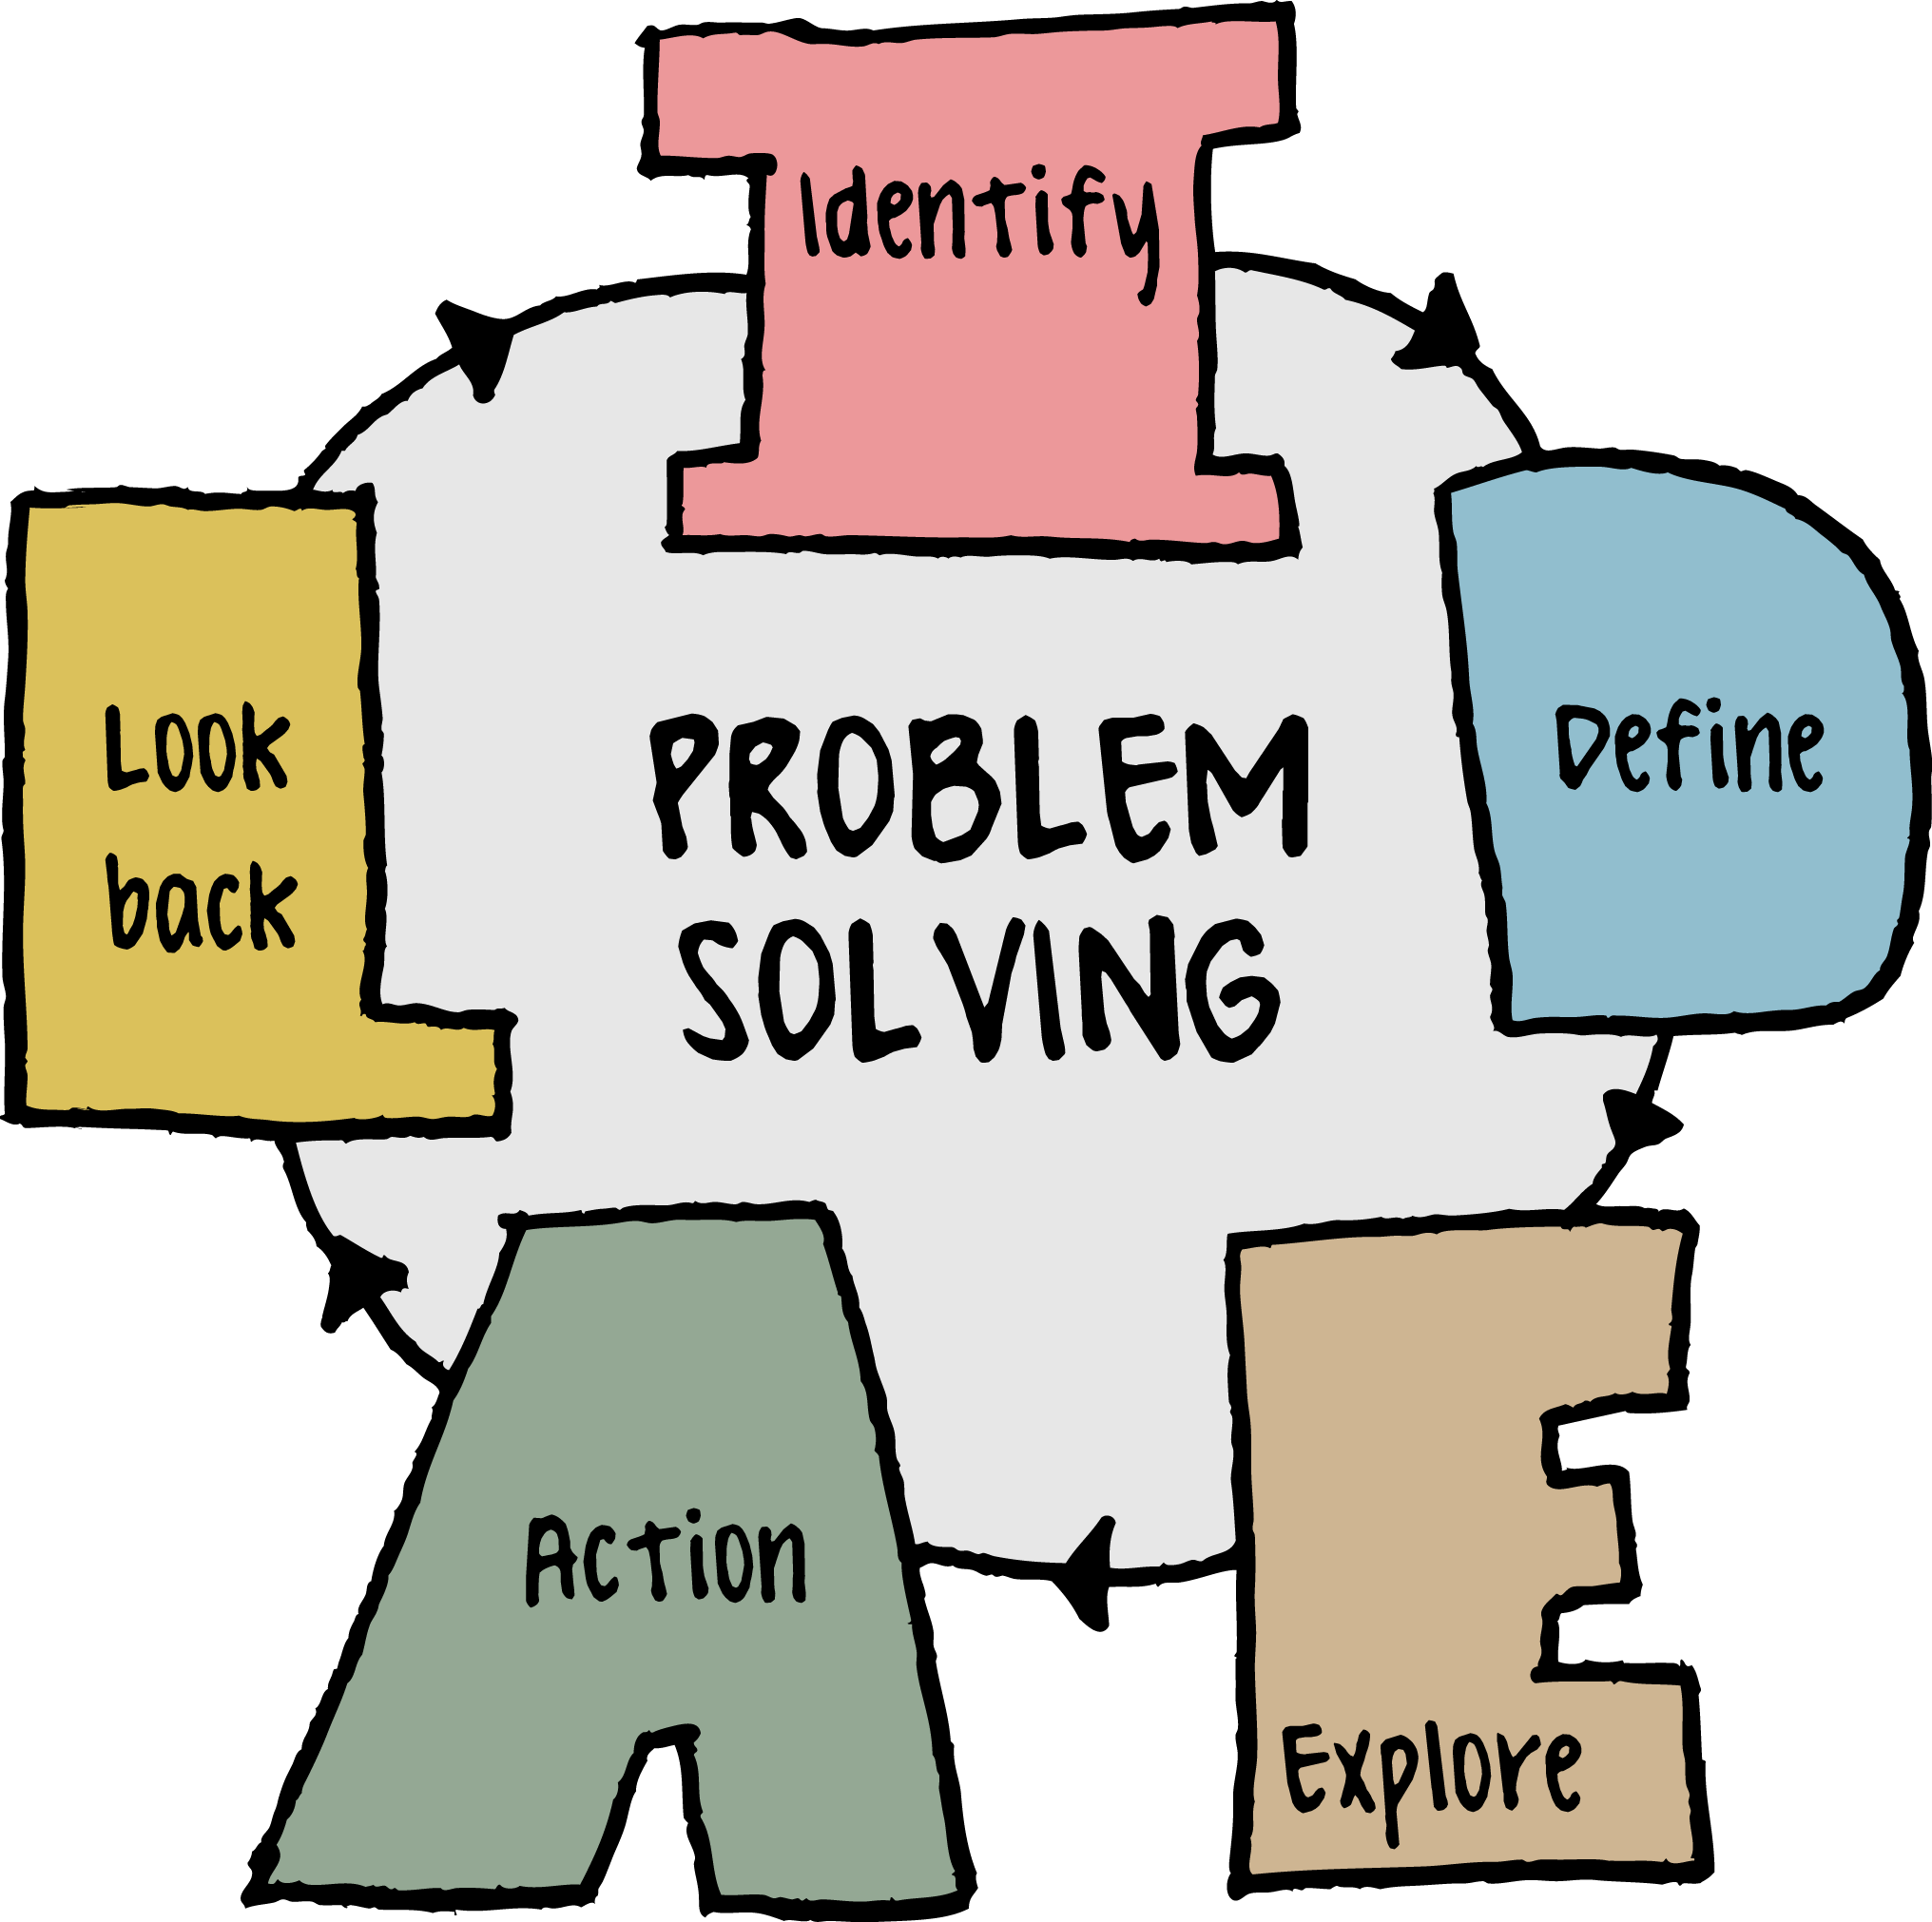 mathematics problem solving and ideal math Here is a four-step math problem-solving plan that involves looking for clues, developing a game plan, solving the problem, and reflection.